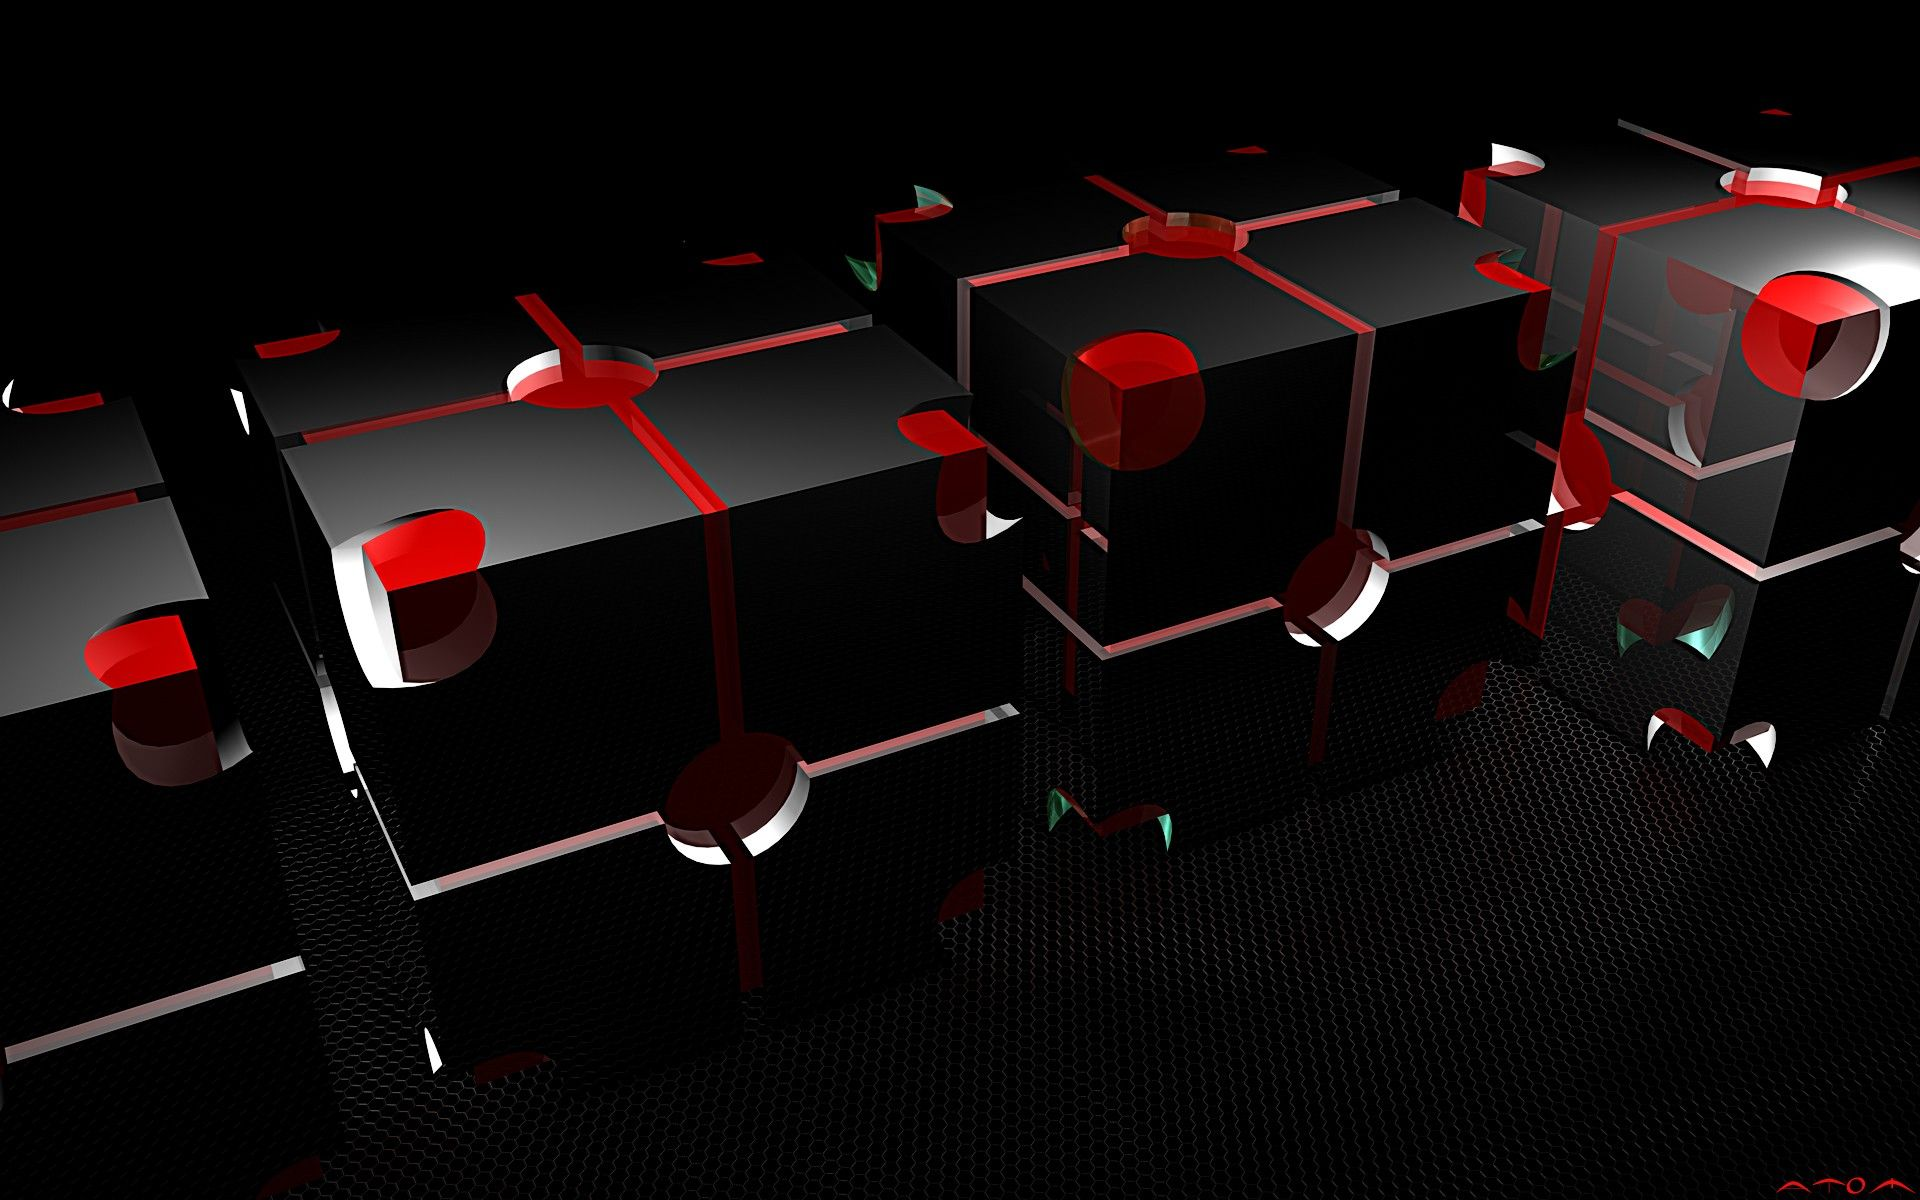 Hd wallpaper red and black - Red And Black Wallpapers Group 1024 768 Hd Black And Red Wallpapers 47 Wallpapers